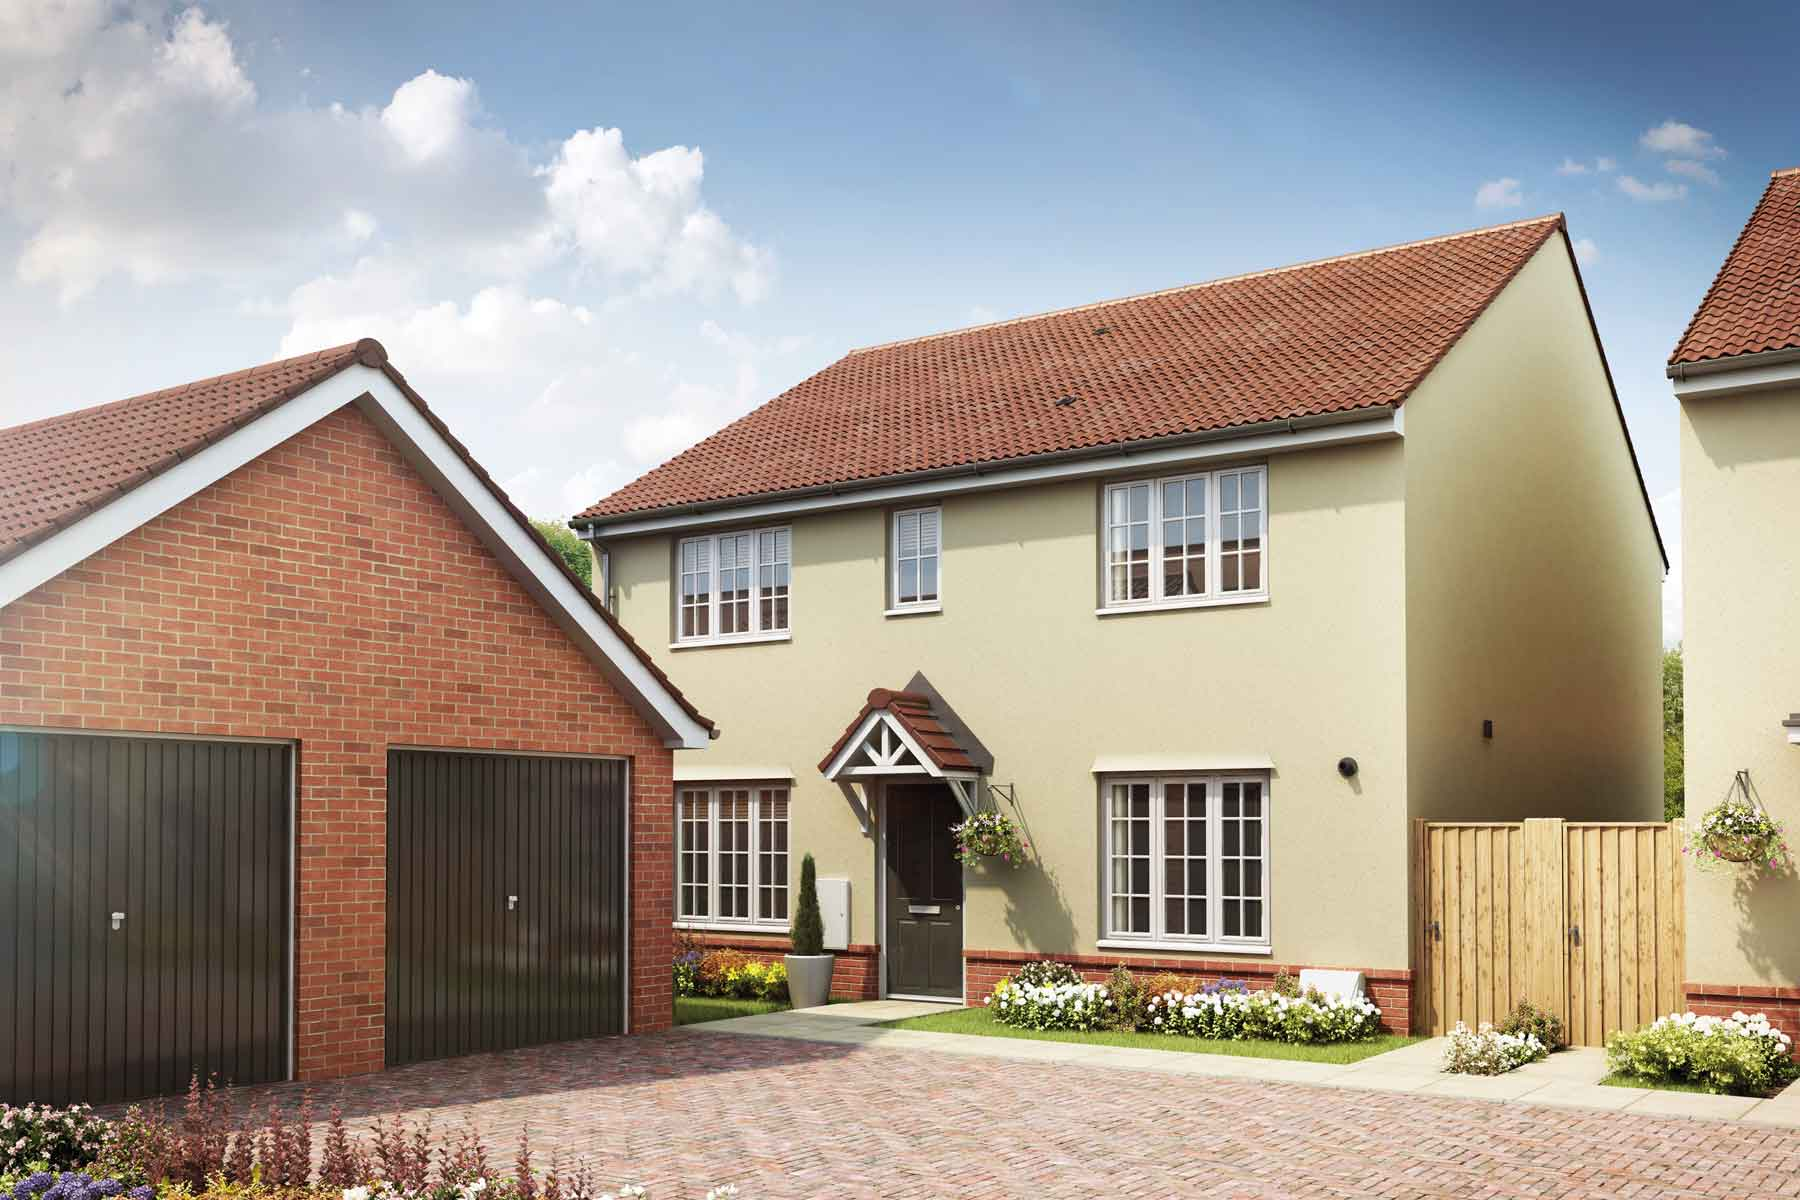 Artist impression of The Thornford